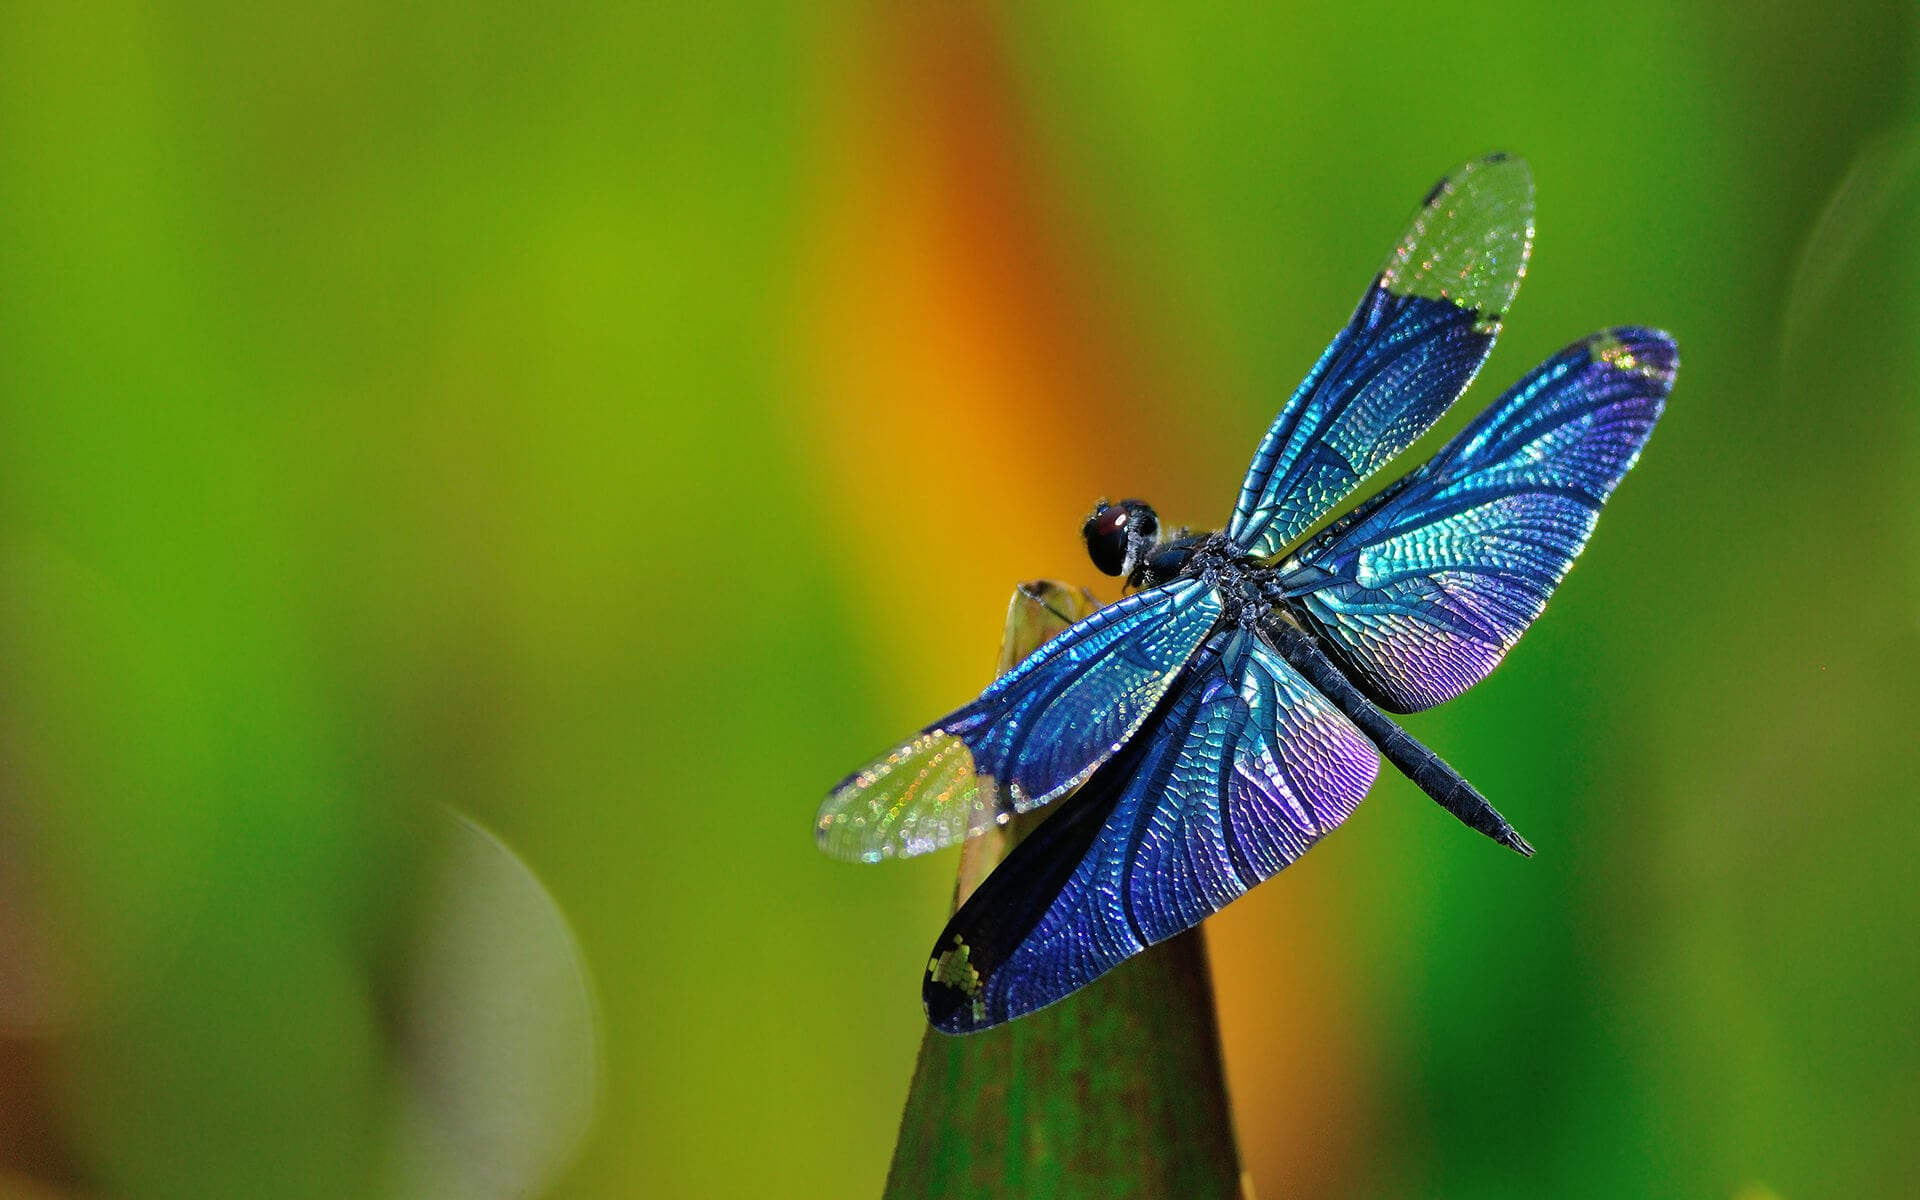 Eyes Of The Dragonfly Inspire Machine Vision on Flowers Cycle